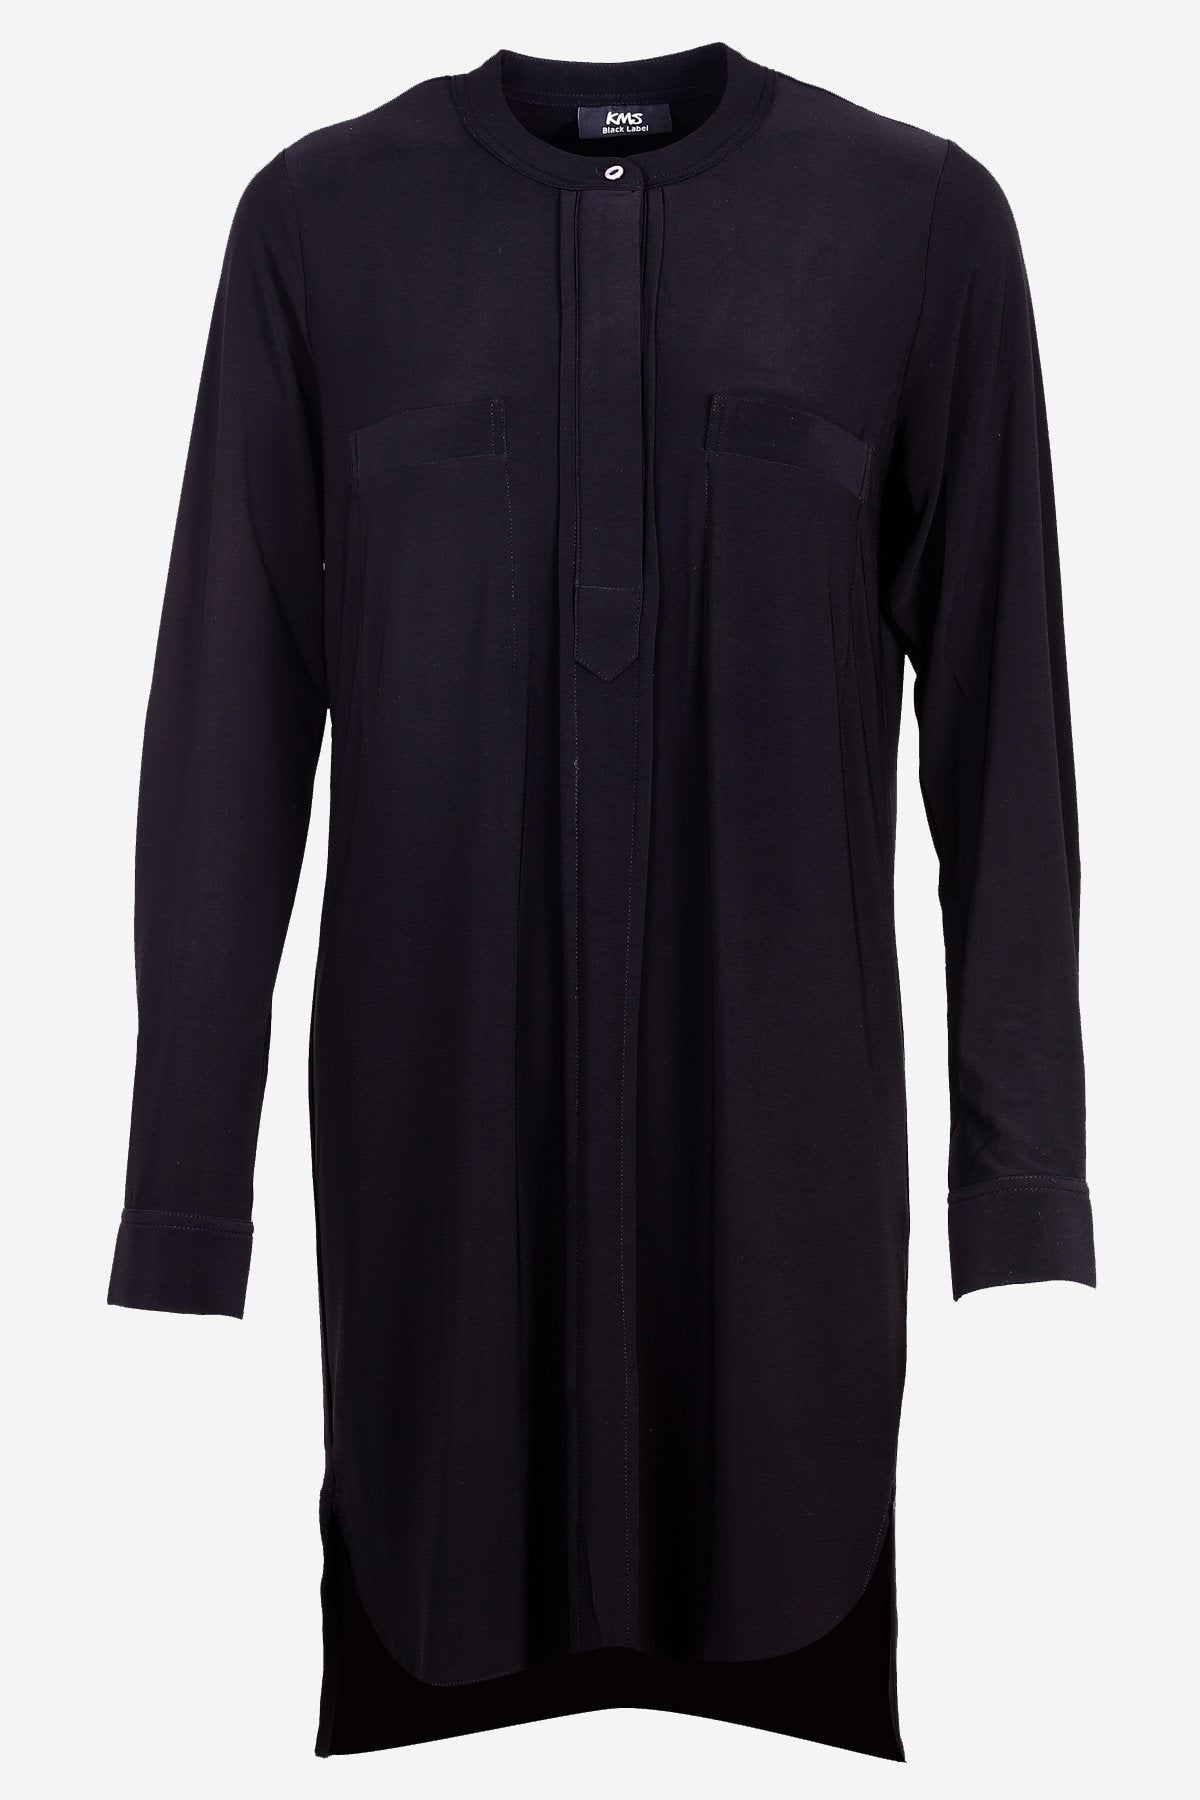 Long Collarless Shirt black